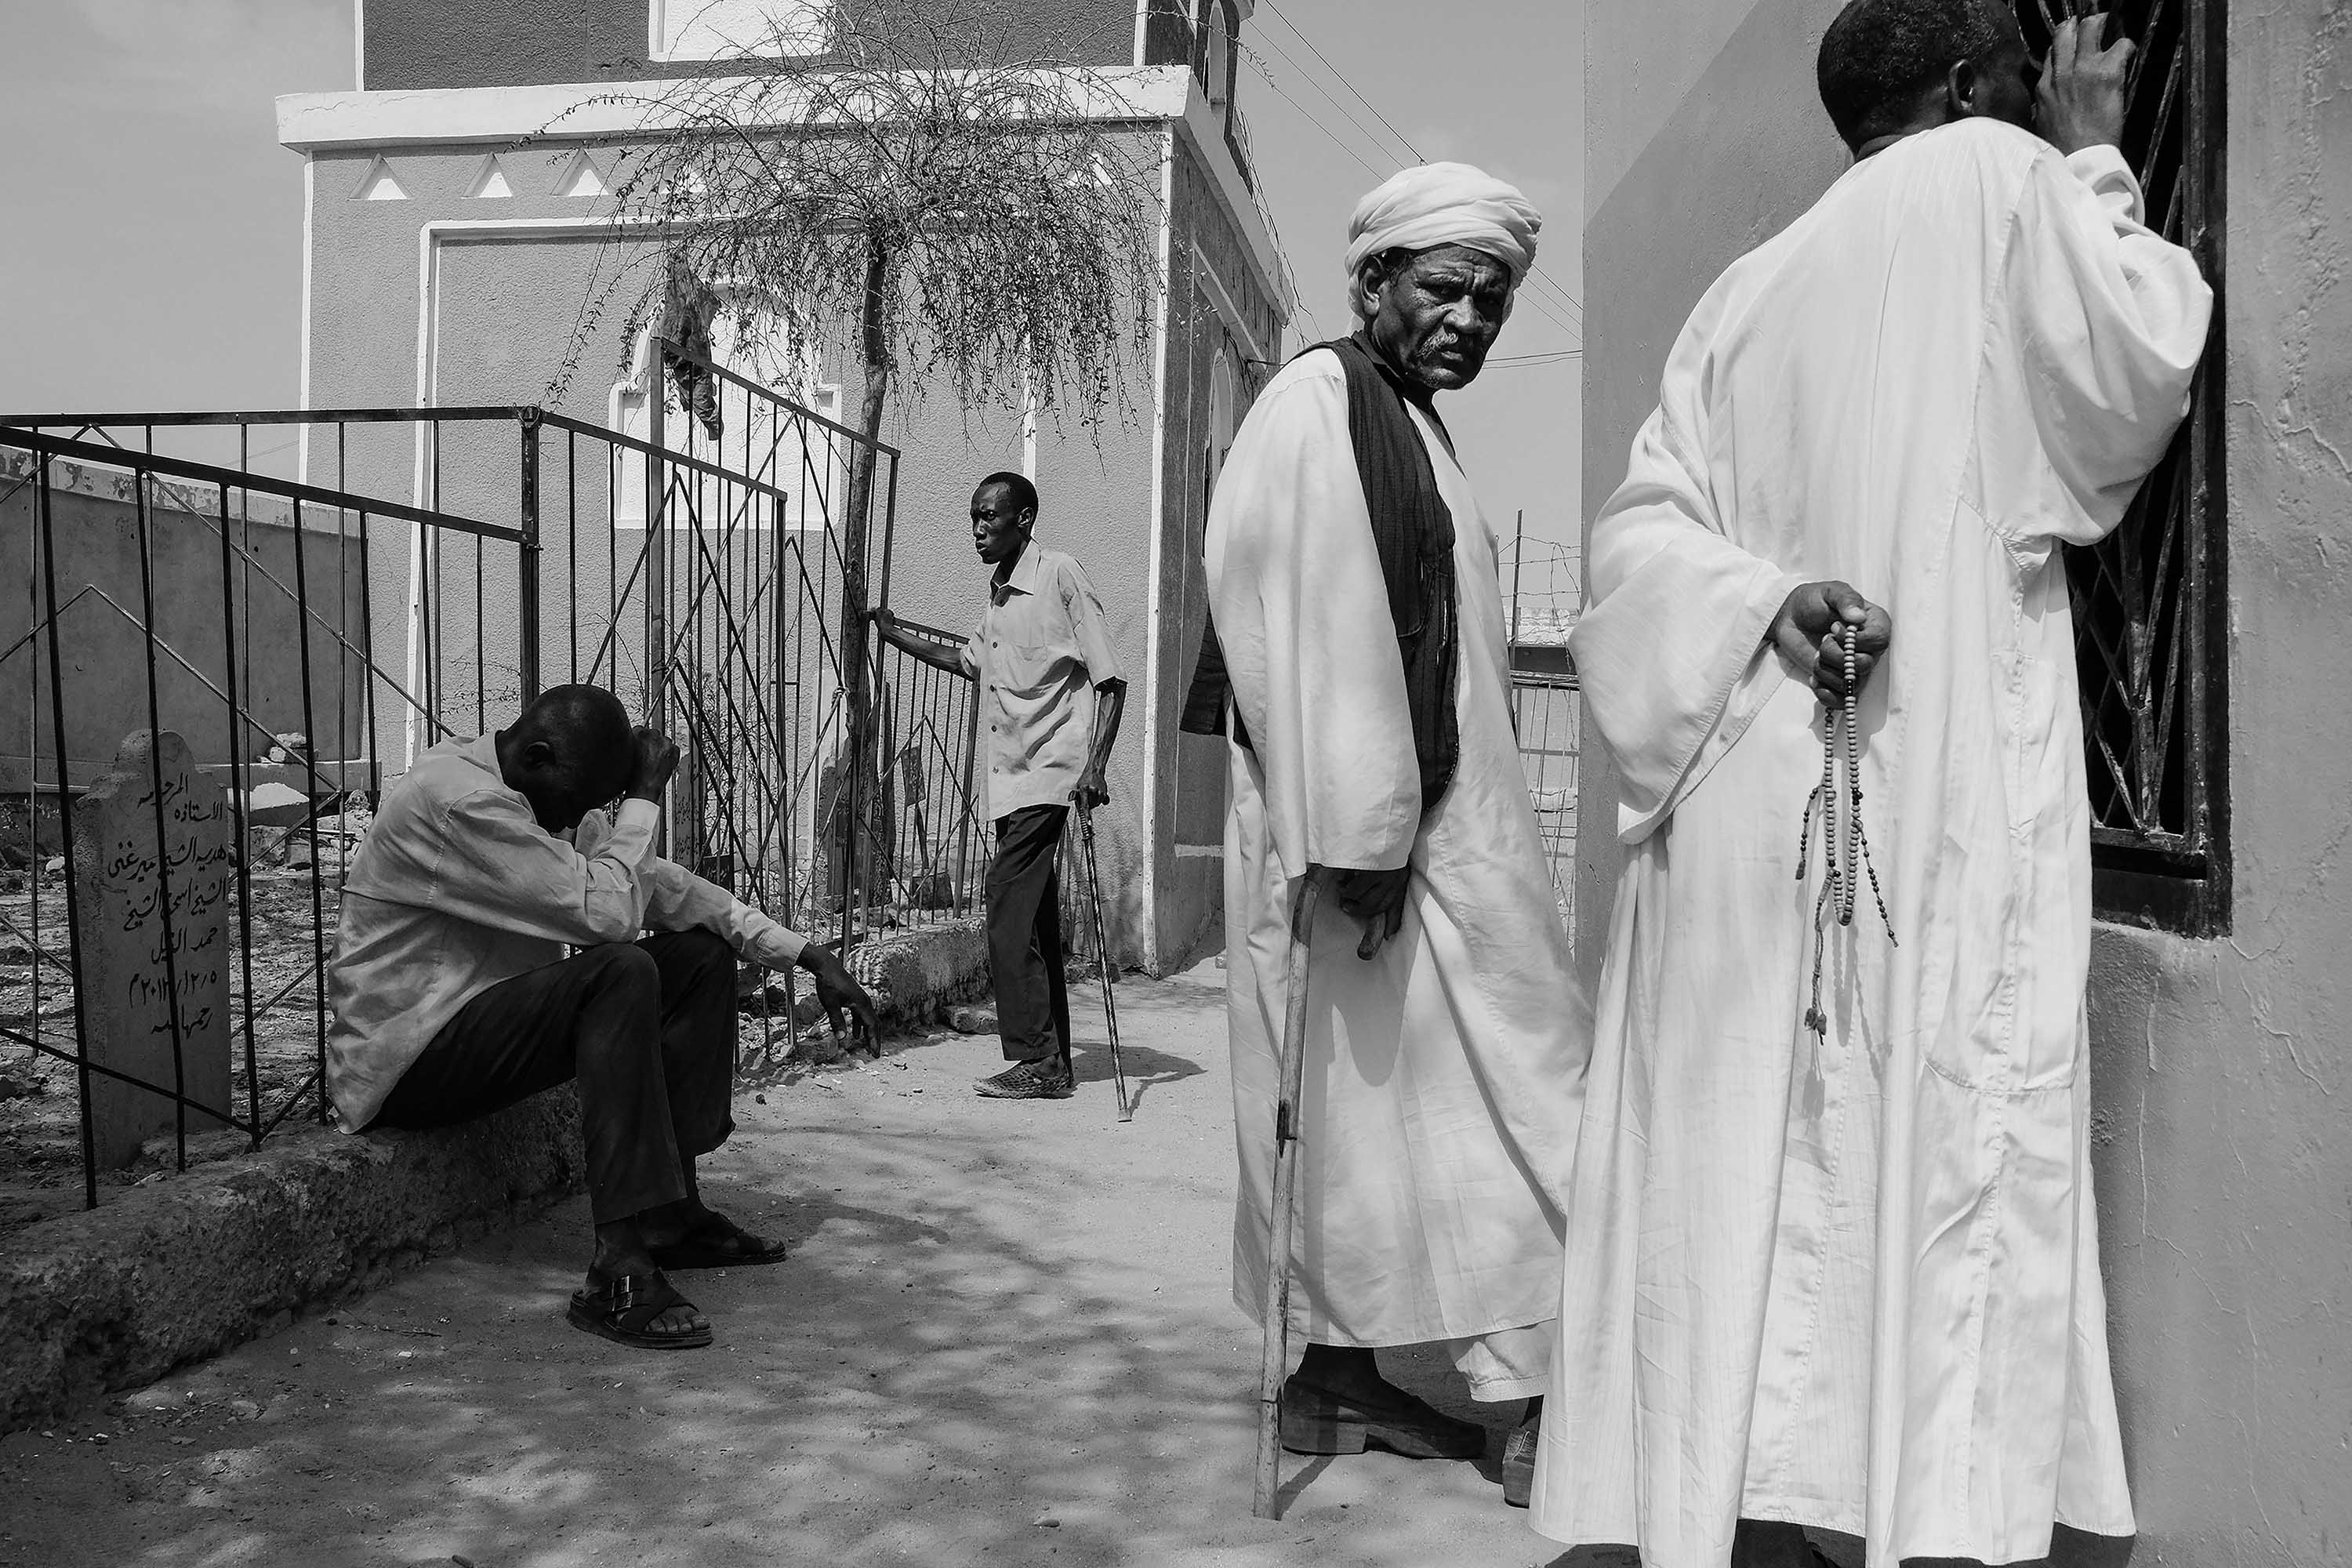 01. Sufis gathered around Hamed El Nil mausoleaum listen to the songs echoing from within. Omdurman. Sudan. 2017